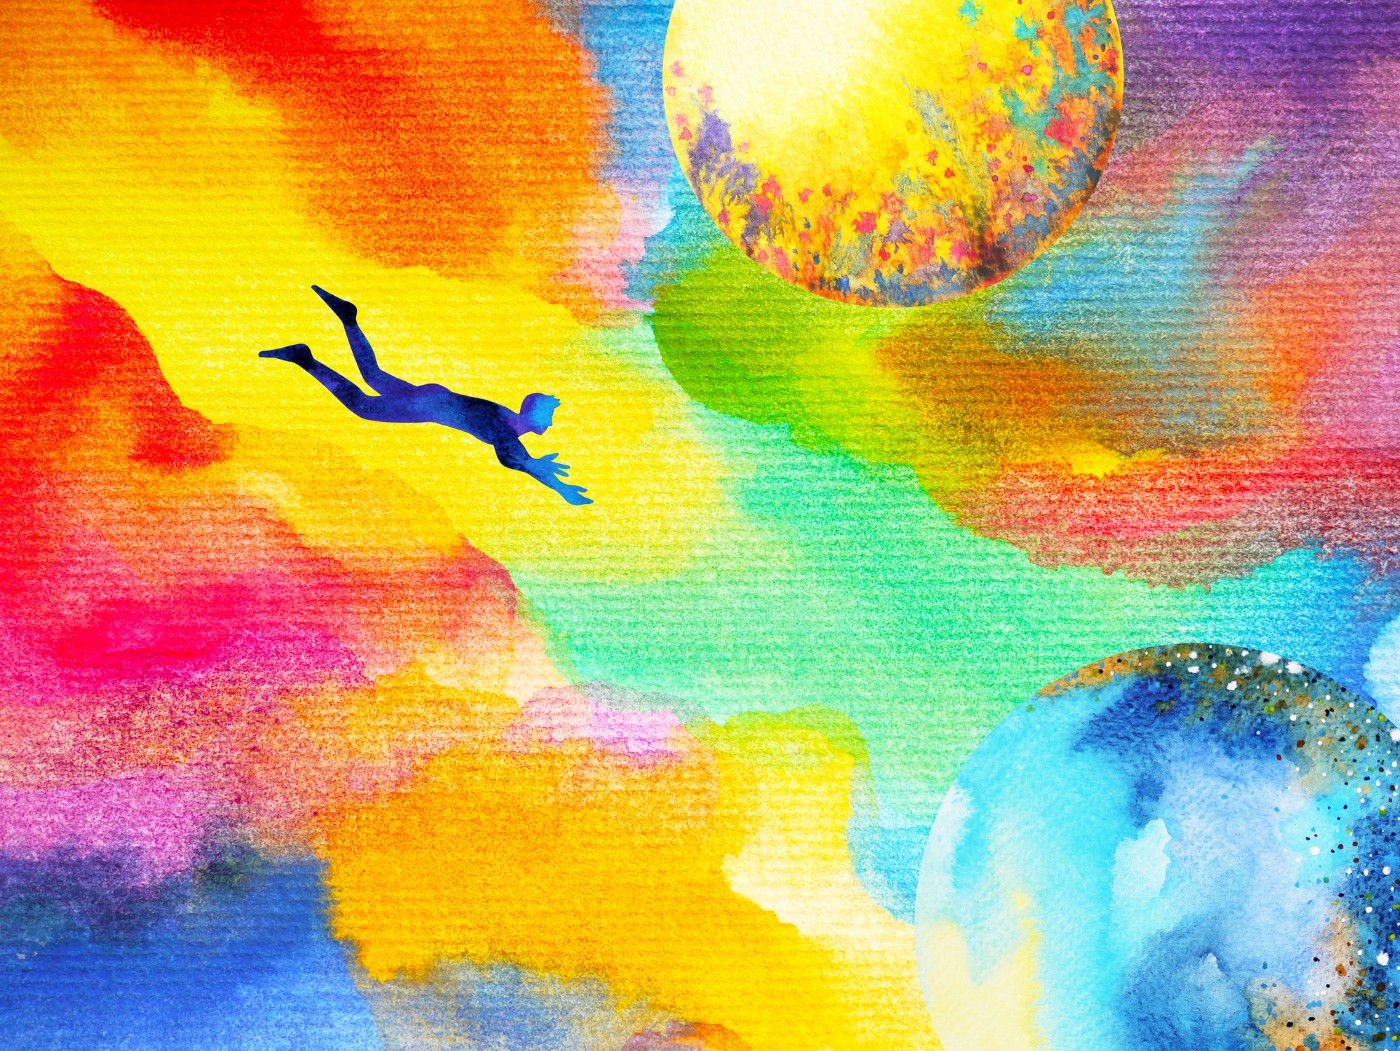 A watercolor abstract illustration of a man swimming through multicolored clouds/space.